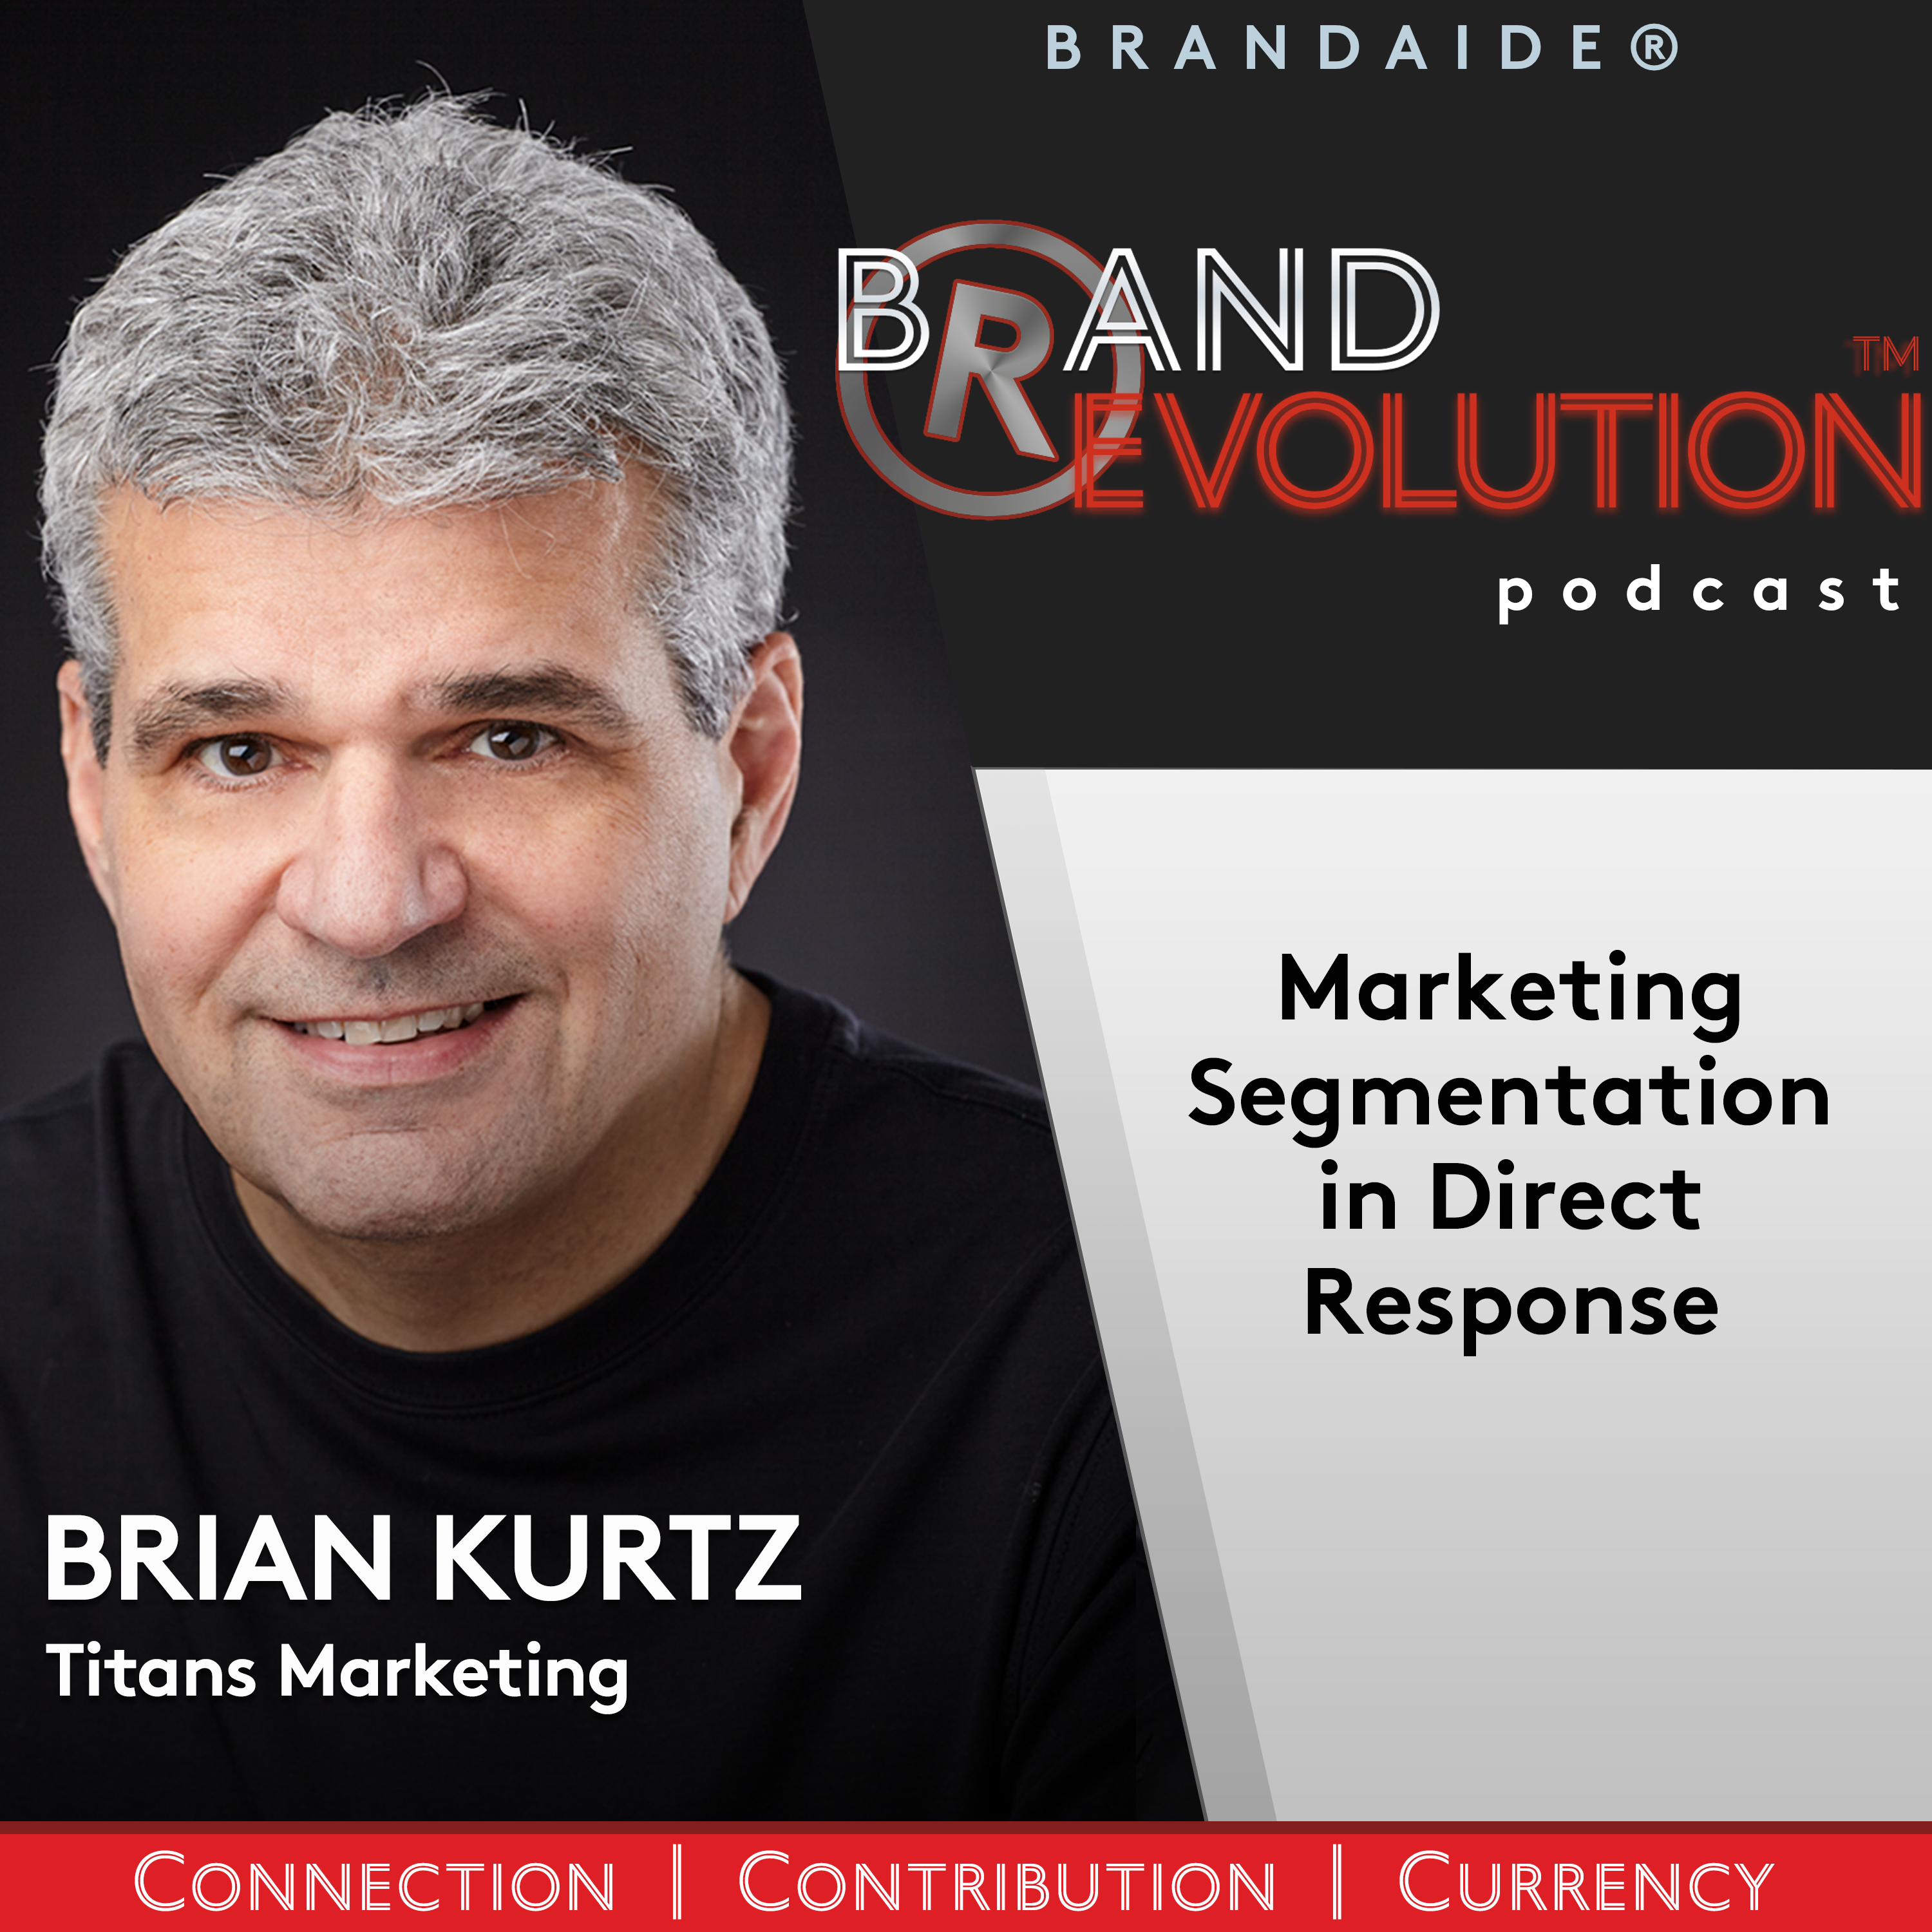 Marketing Segmentation in Direct Response – Brian Kurtz